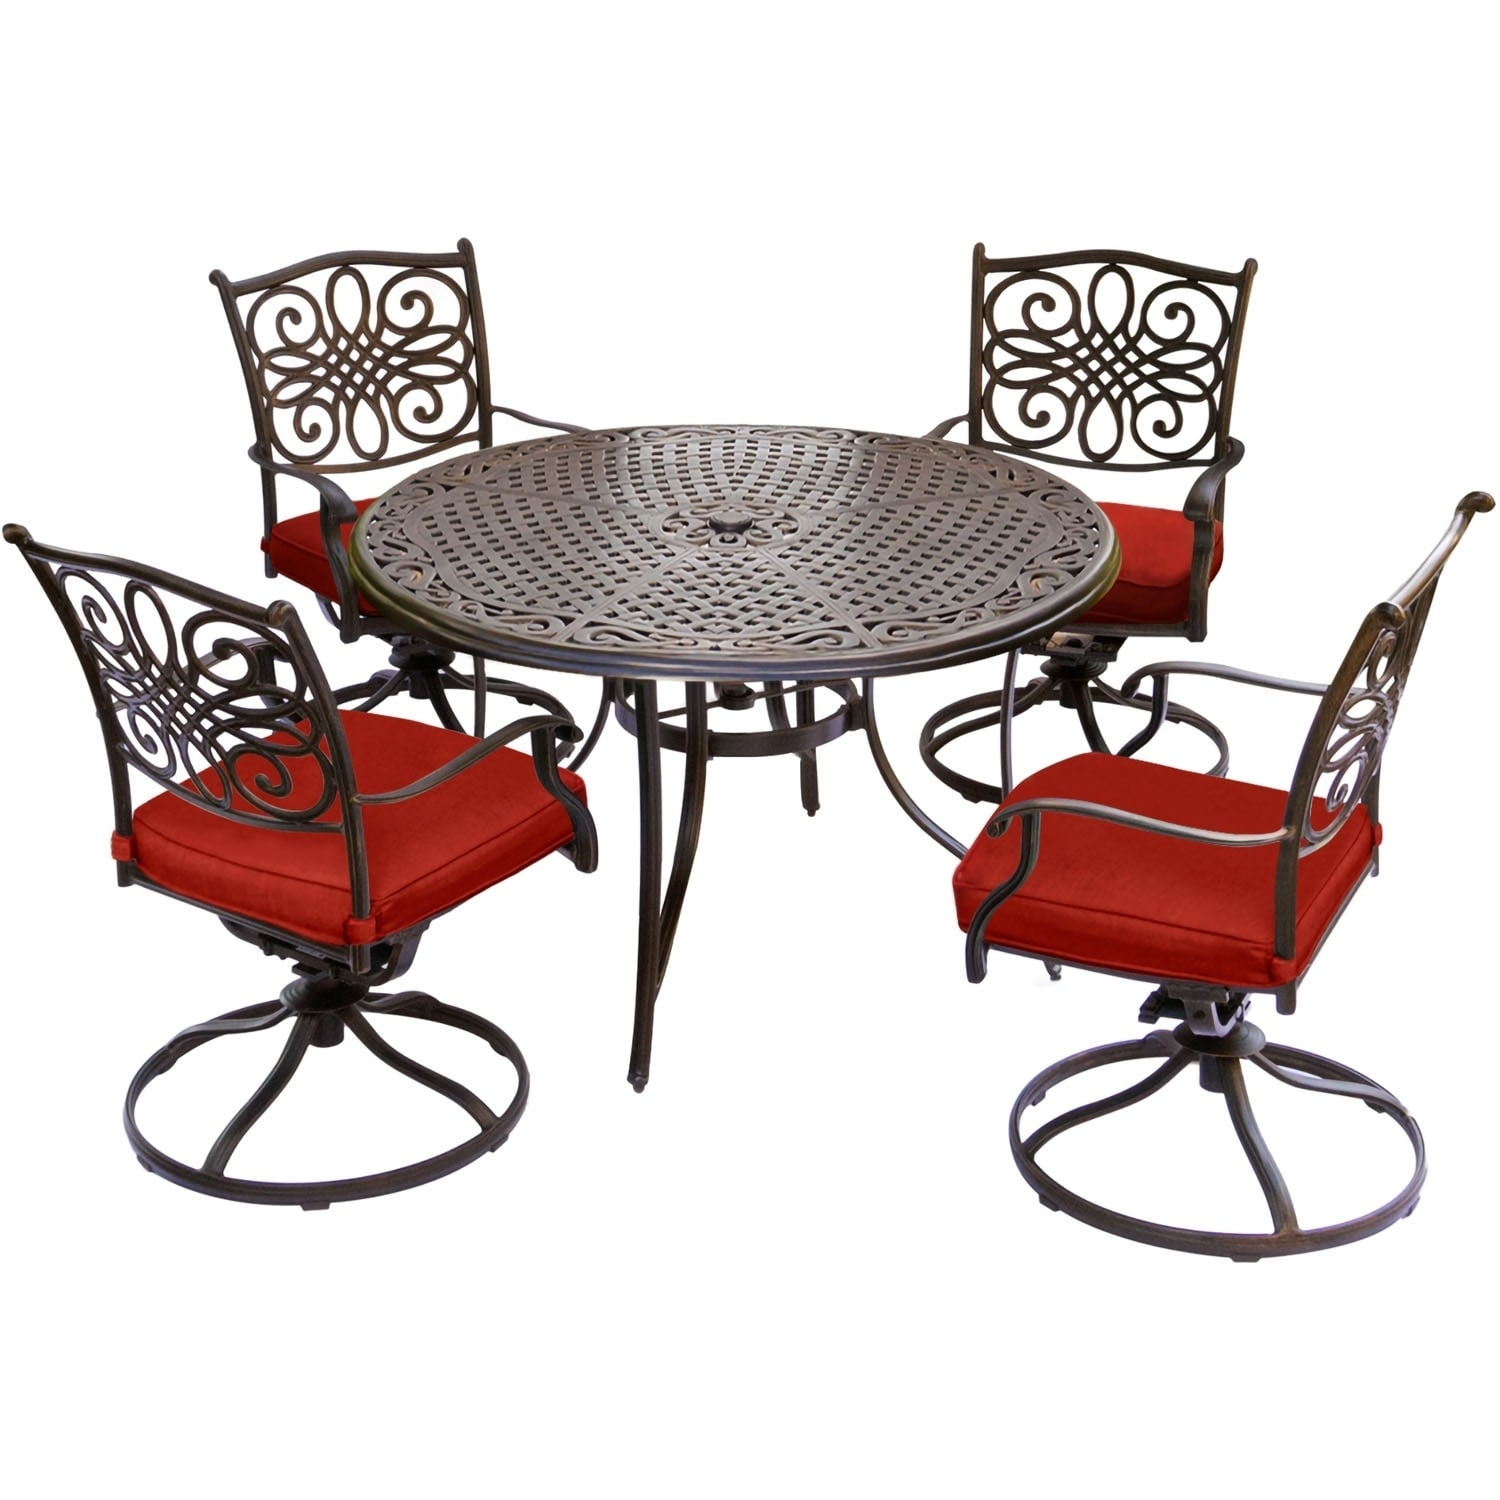 Shop Hanover Traditions 5 Piece Dining Set With Four Swivel Rockers In Red  And A 48 In. Cast Top Table   Free Shipping Today   Overstock   20707765